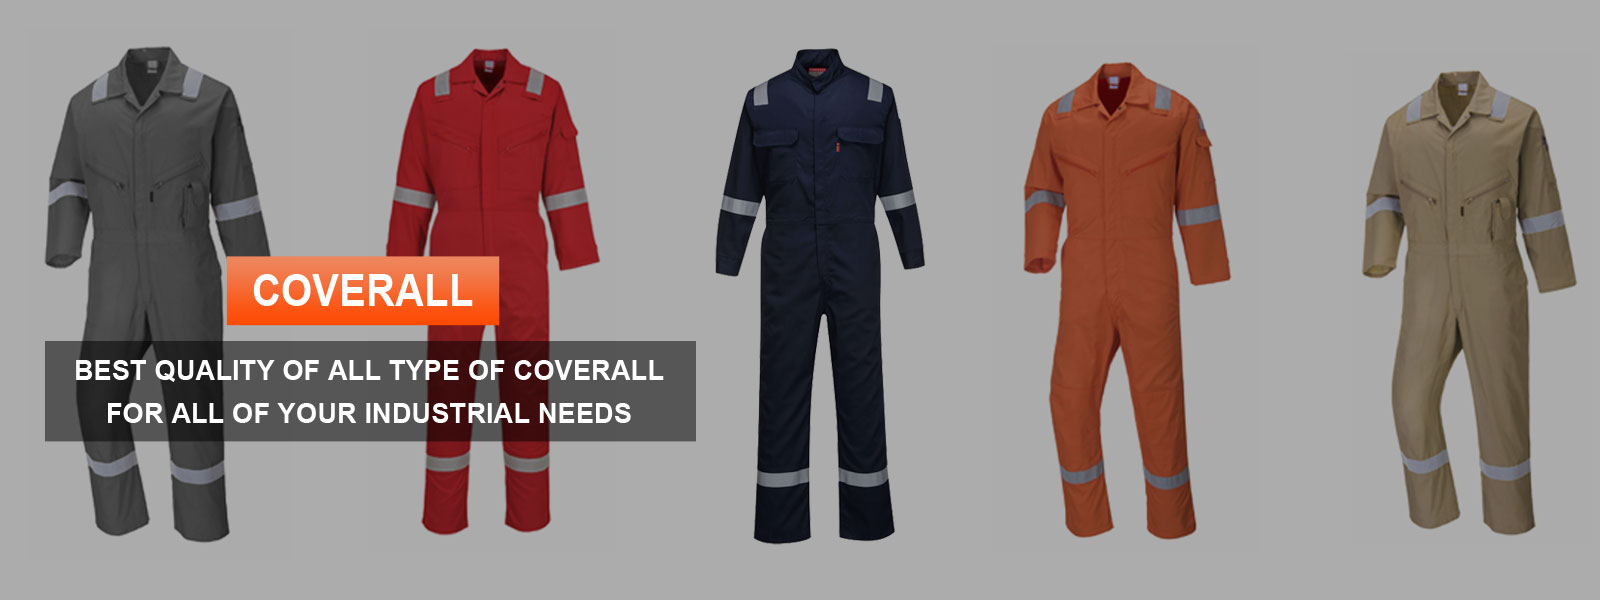 Coverall Manufacturers in Zimbabwe